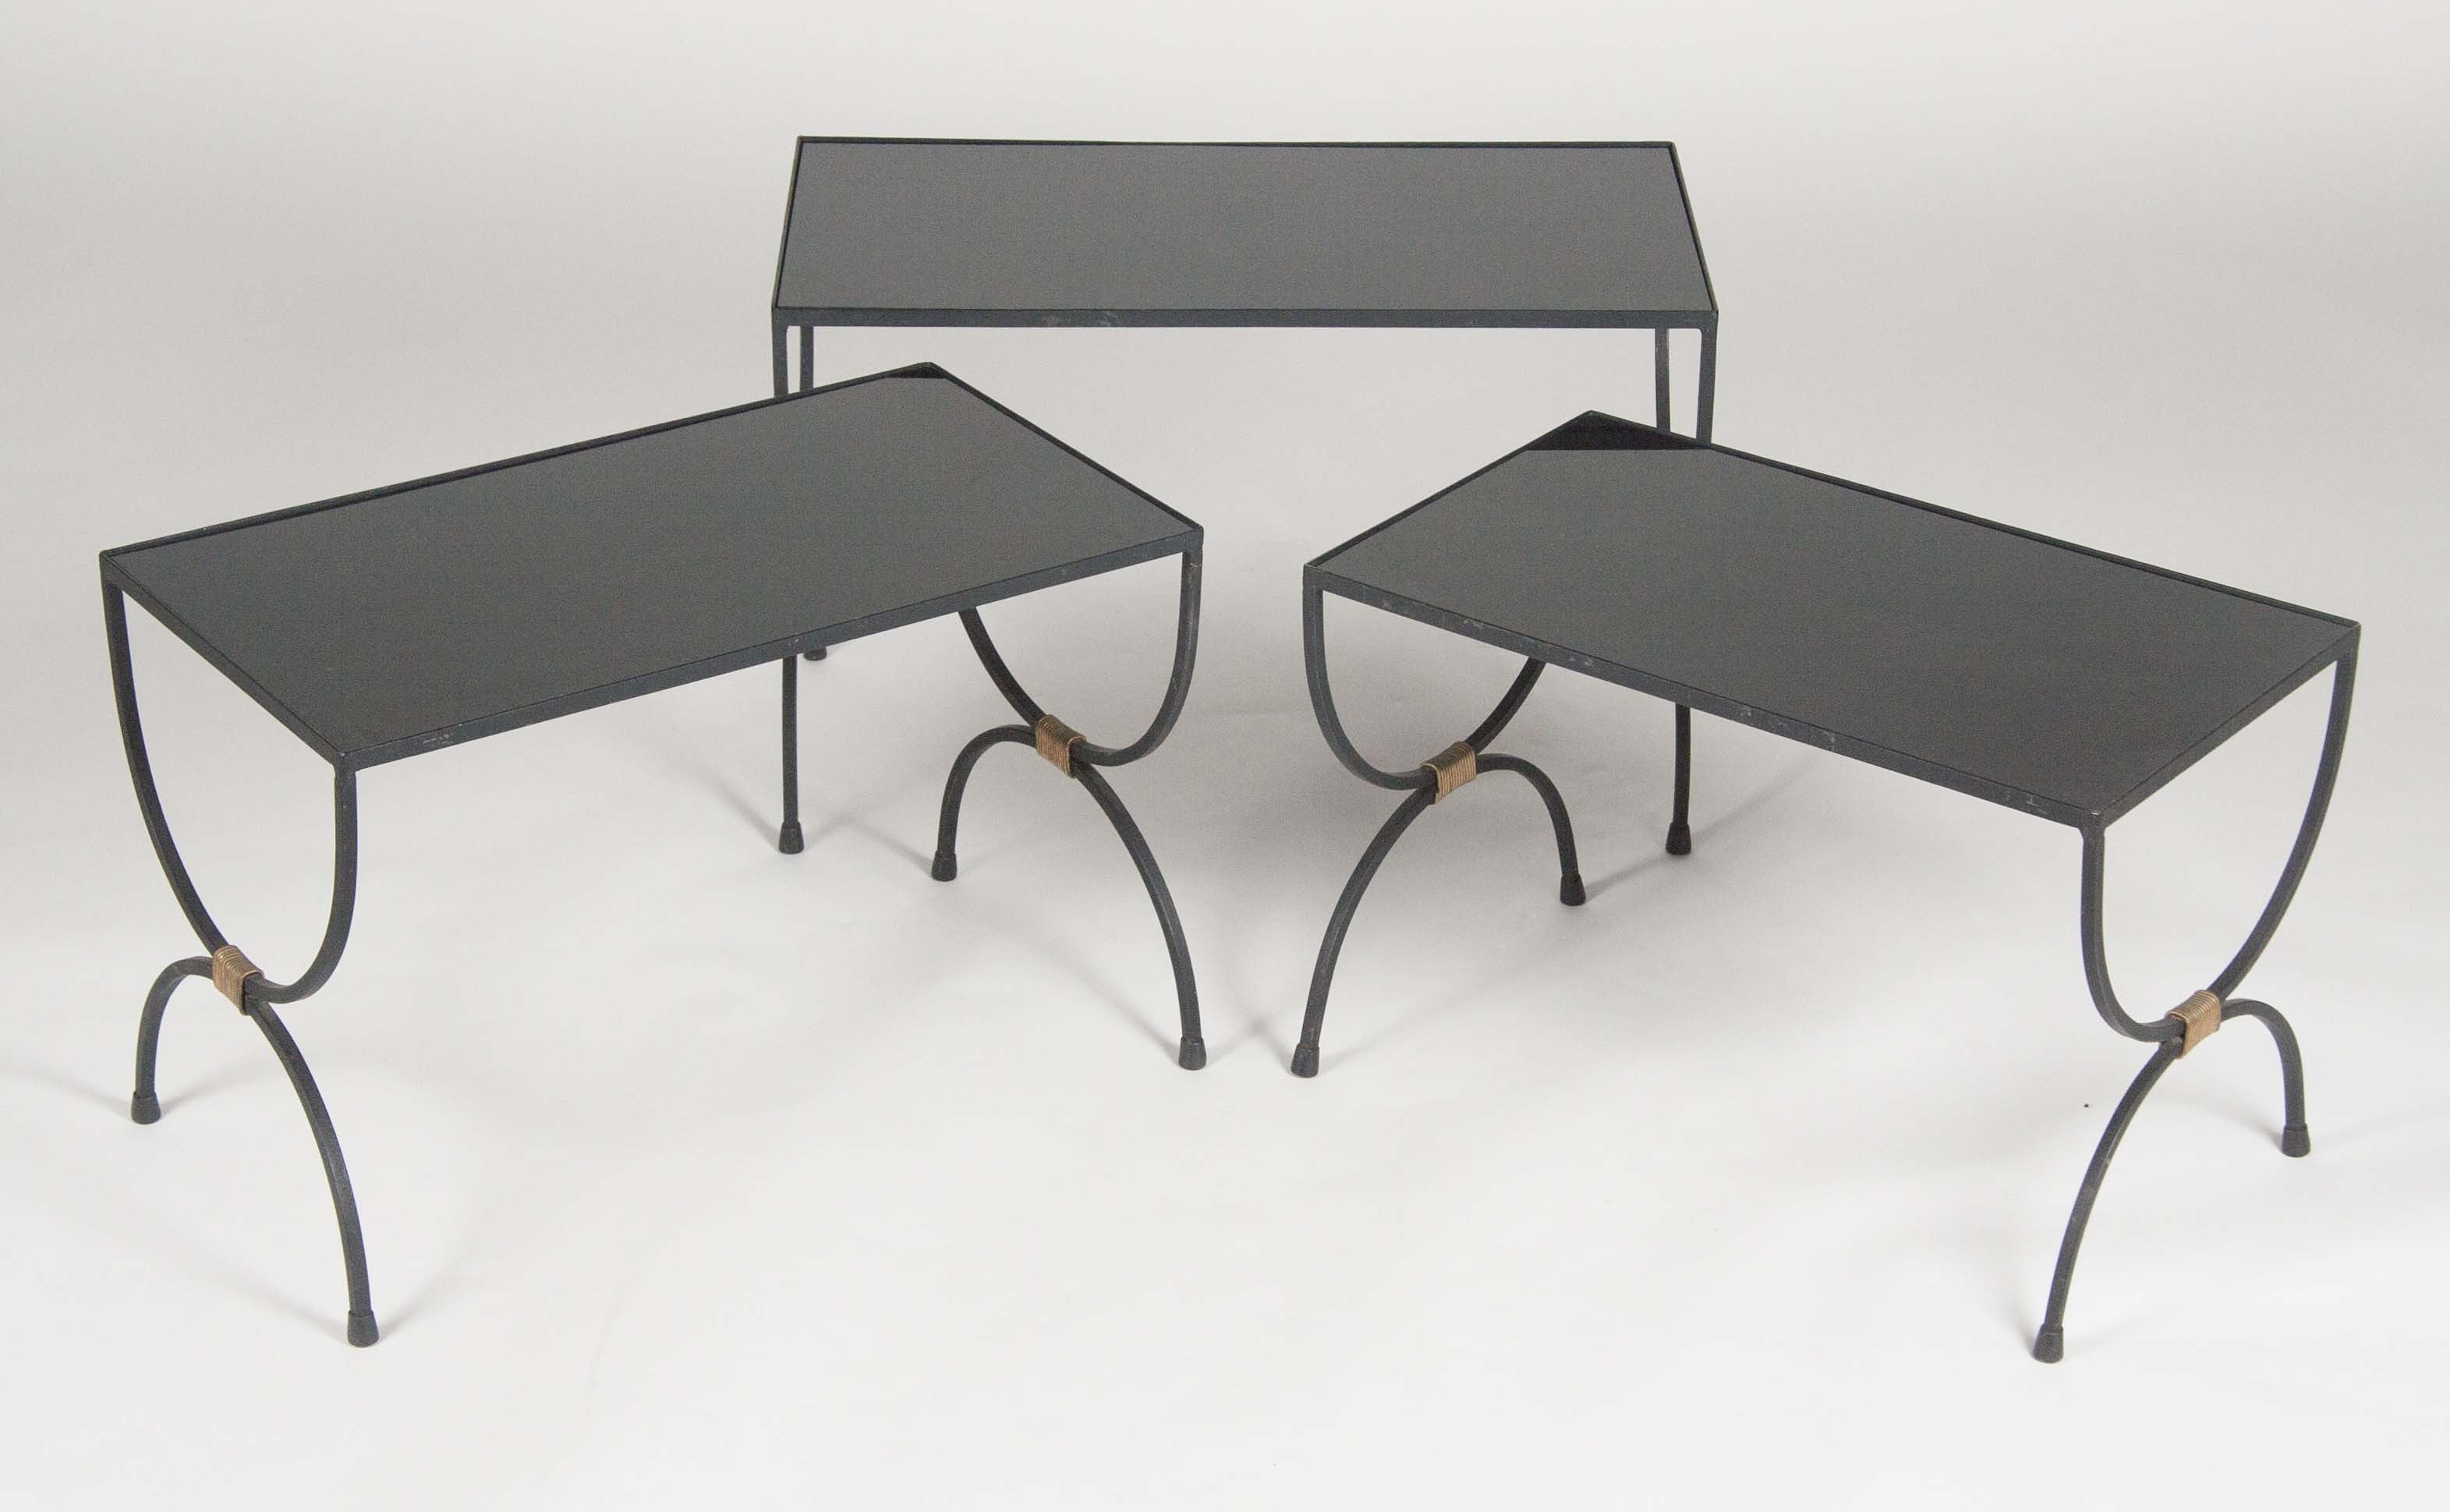 A Set Of 3 Wrought Iron Nesting Tables With Bronze Detail Attributed To  Adnet